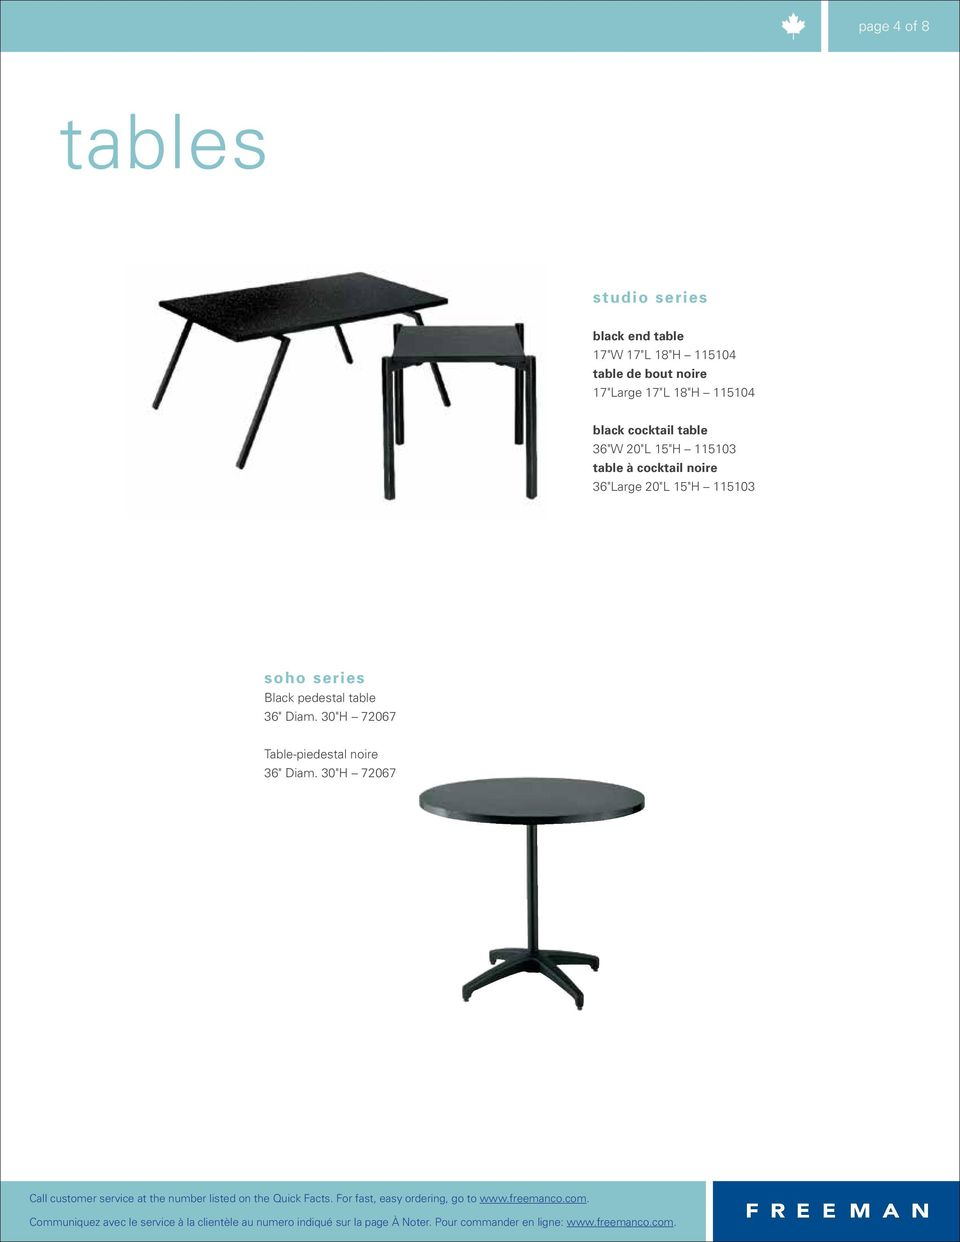 "30""H 72067 Table-piedestal noire 36"" Diam. 30""H 72067 Call customer service at the number listed on the Quick Facts."